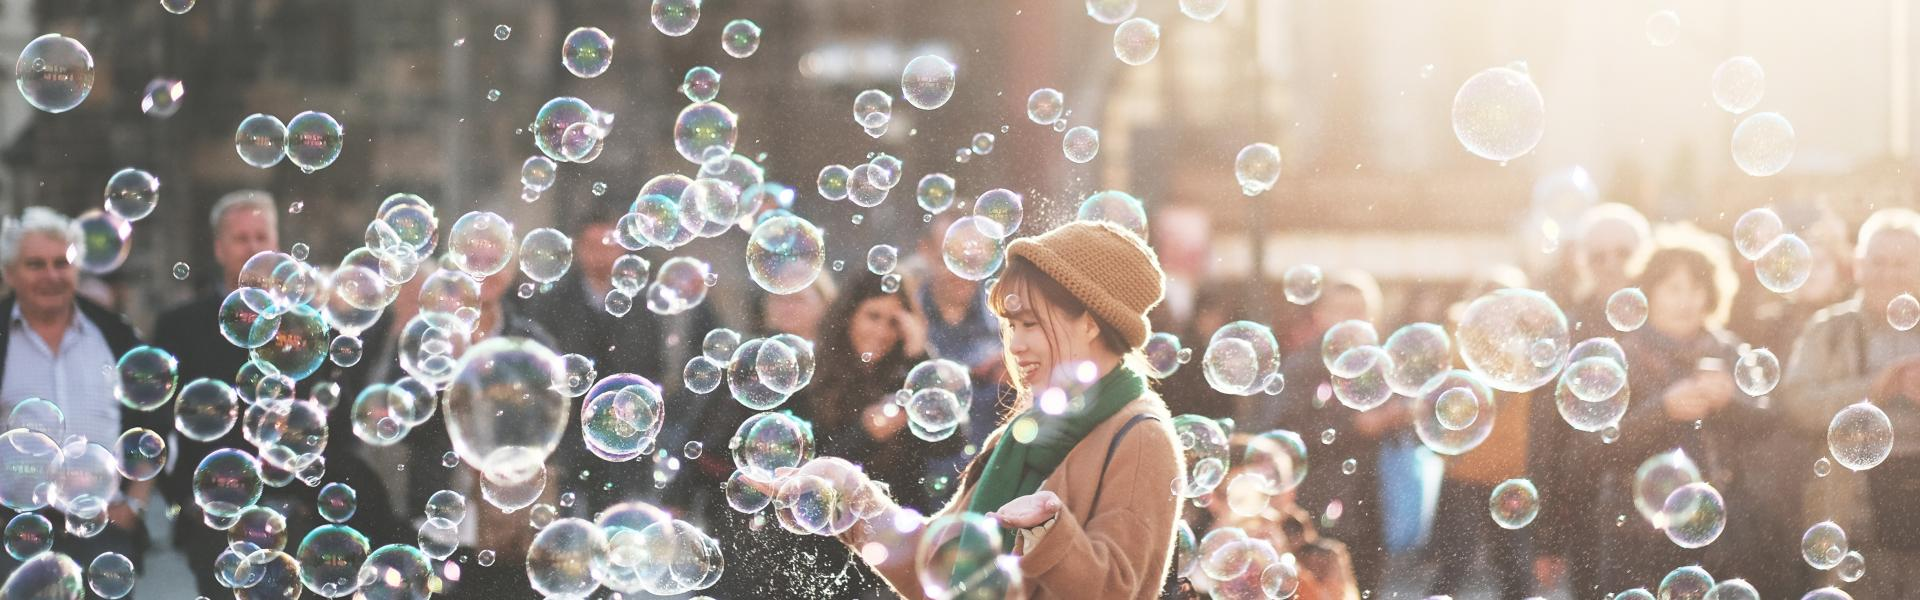 A woman standing in a crowd surrounded by bubbles.